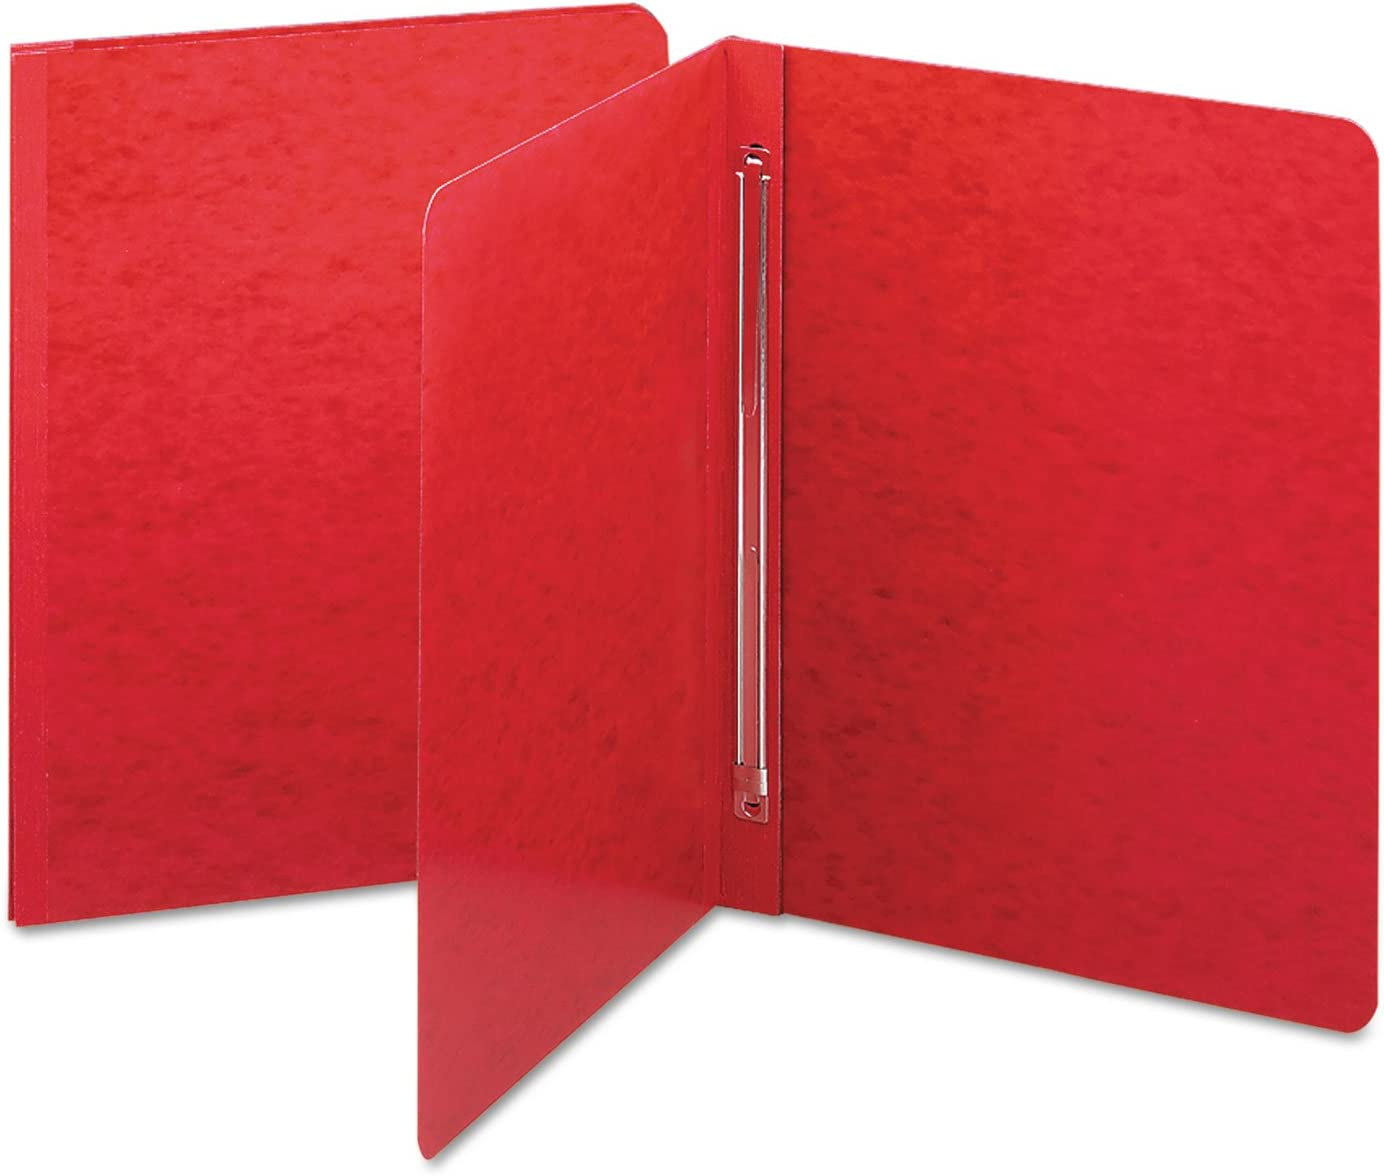 Sold As 1 Each 11 x 17 - Two-piece style cover compresses material tightly to reduce bulk Prong Fastener Side Opening PressGuard Report Cover Smead Red - PressGuard stock with an embos Ideal for monthly reports and presentations Smead Products